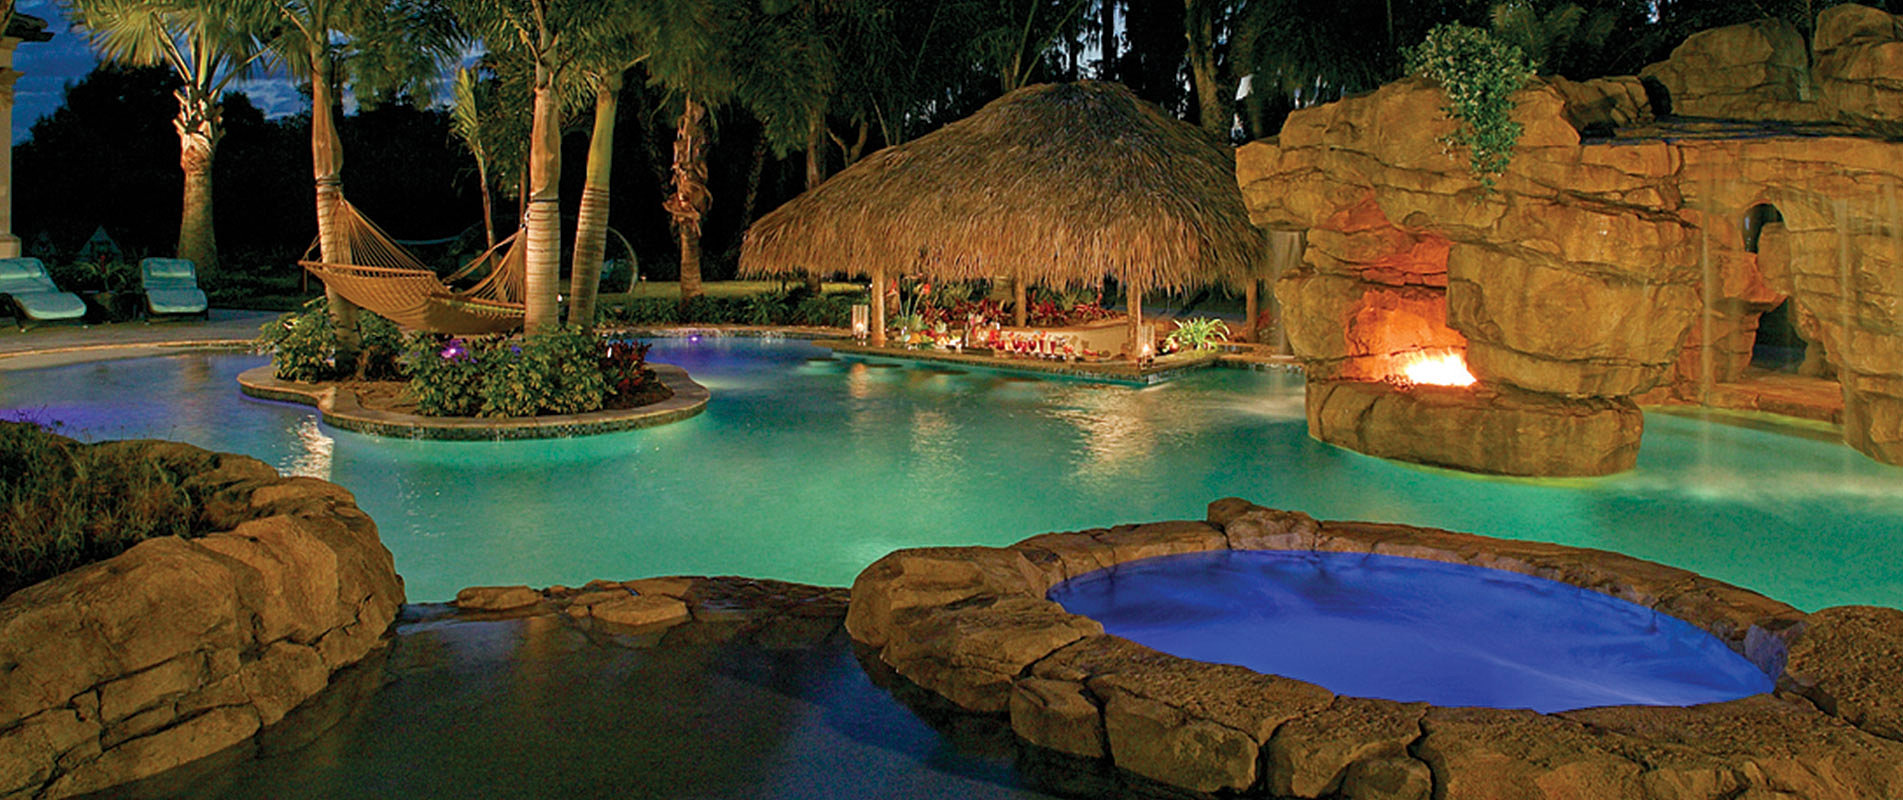 Custom luxury pools in central florida by southern pool for Luxury swimming pools